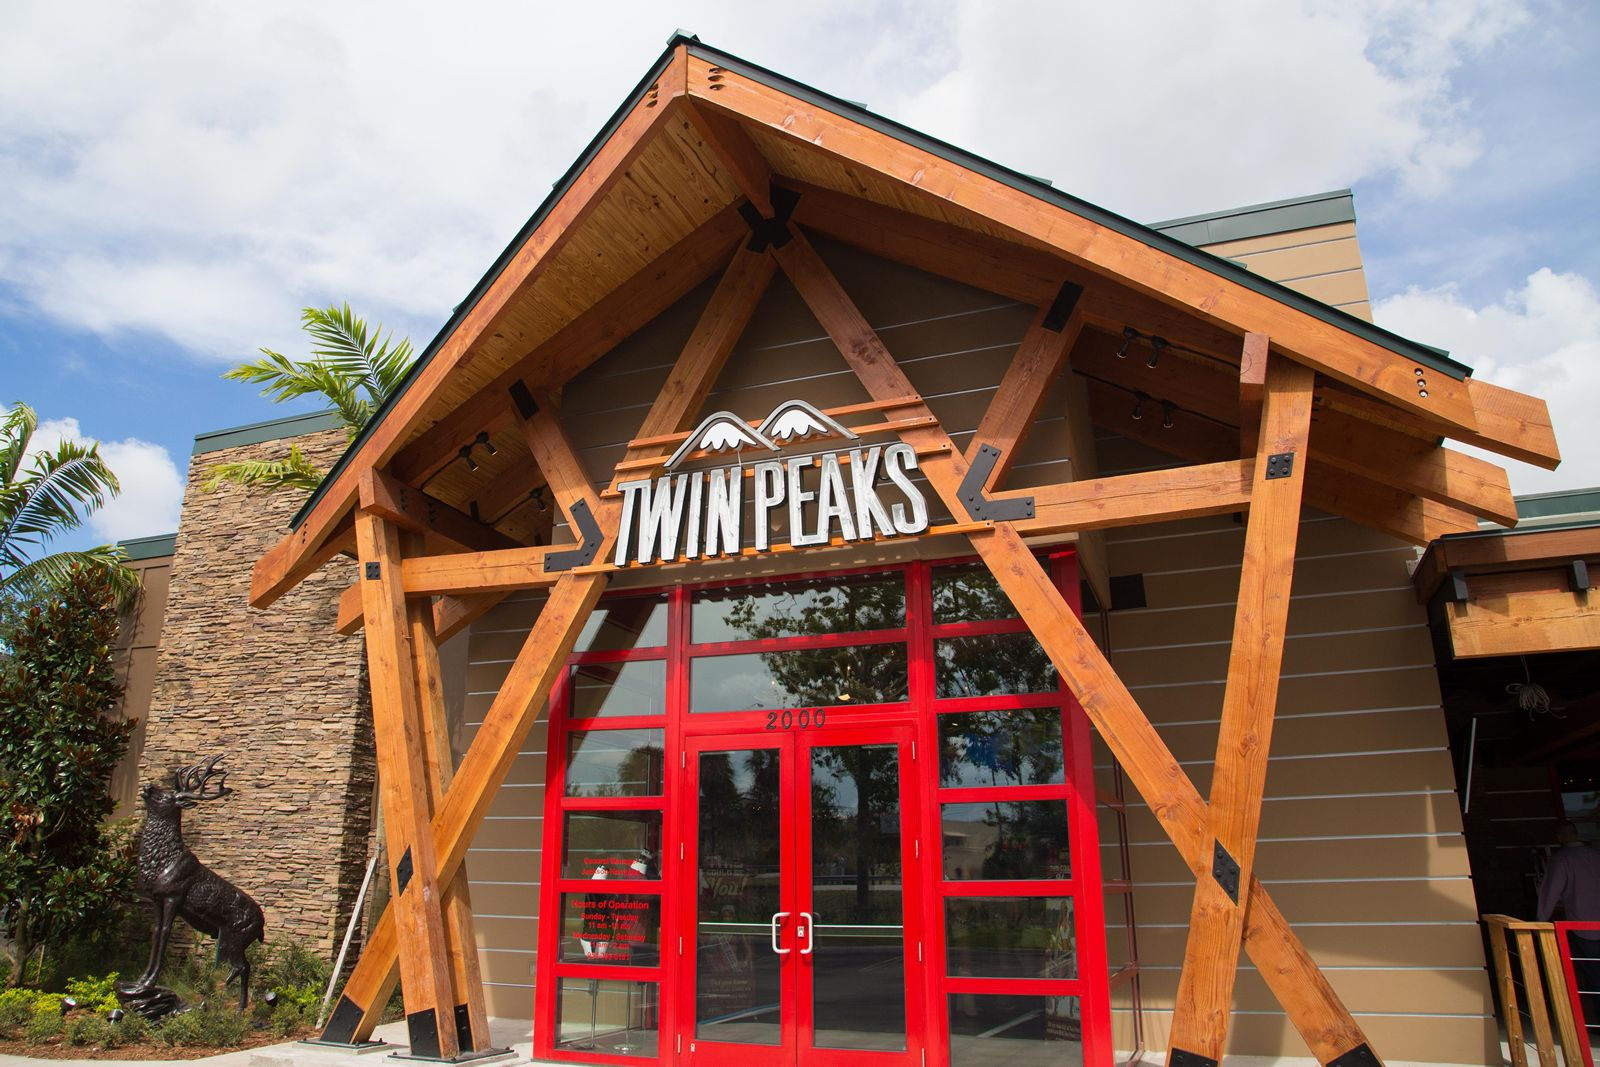 Twin Peaks to Bring Renowned Sports Viewing Experience to Lubbock